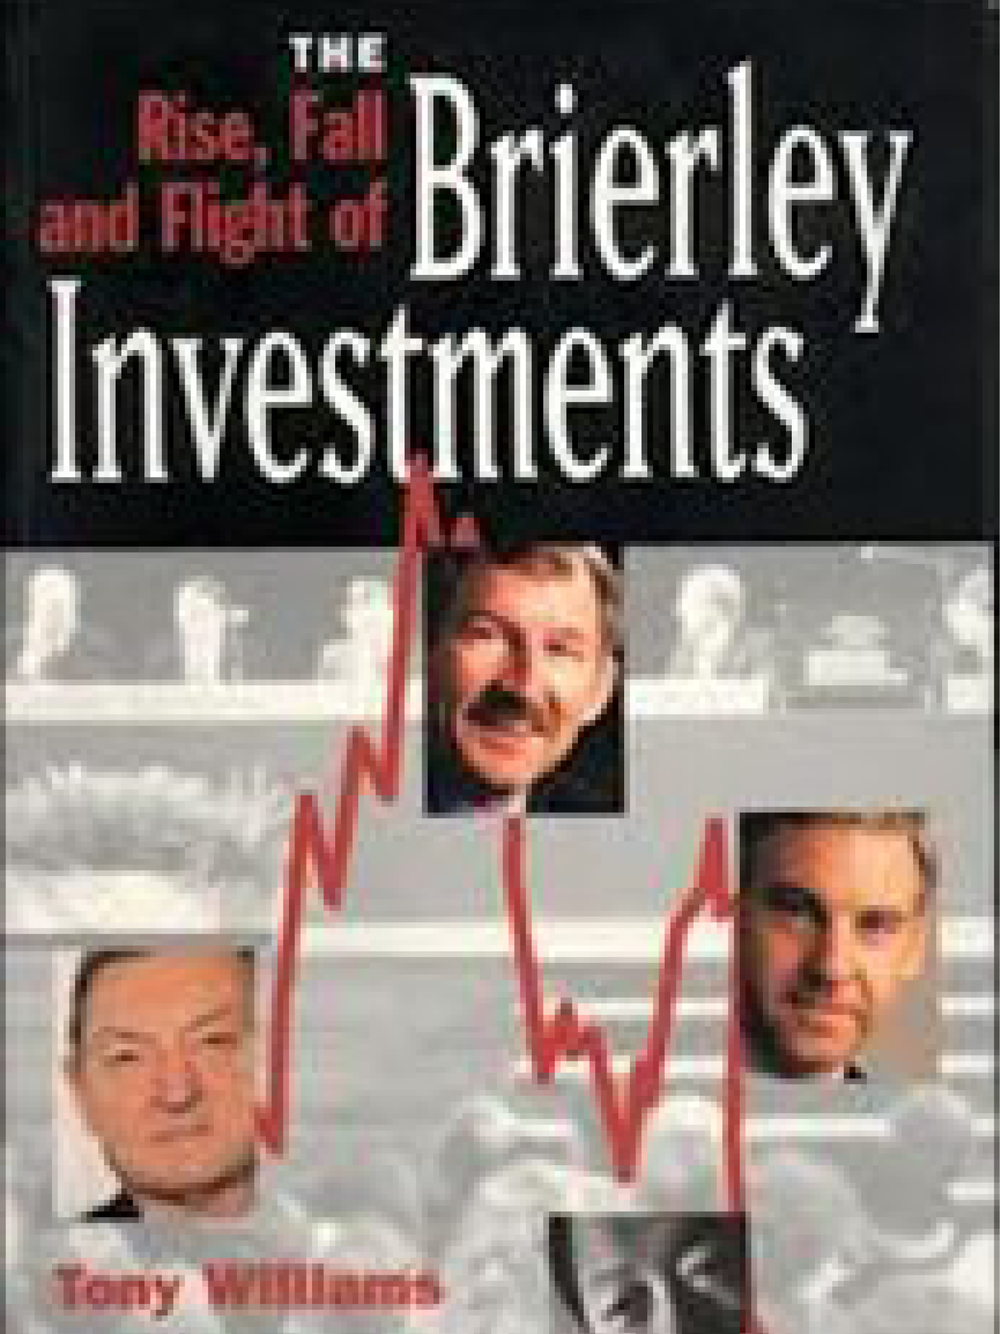 The Rise, Fall and Flight of Brierley Investments. Tony Williams 1999